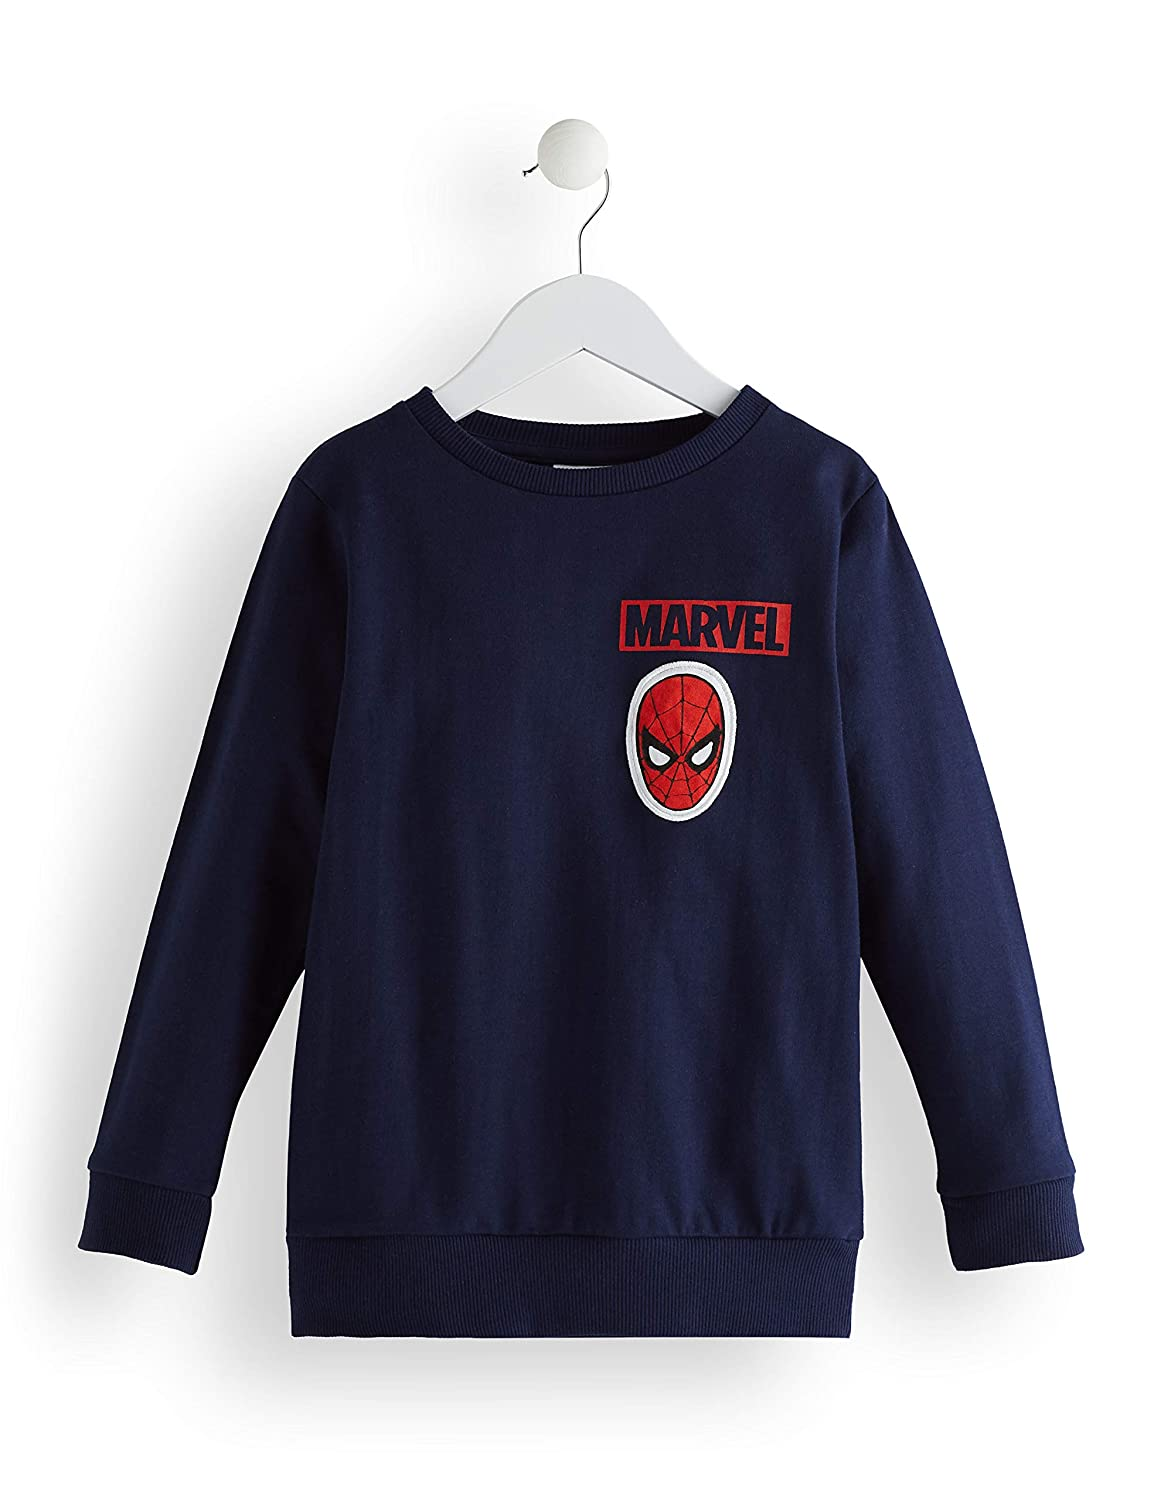 RED WAGON Boy's Marvel Avengers Spiderman Jumper MRC-153329